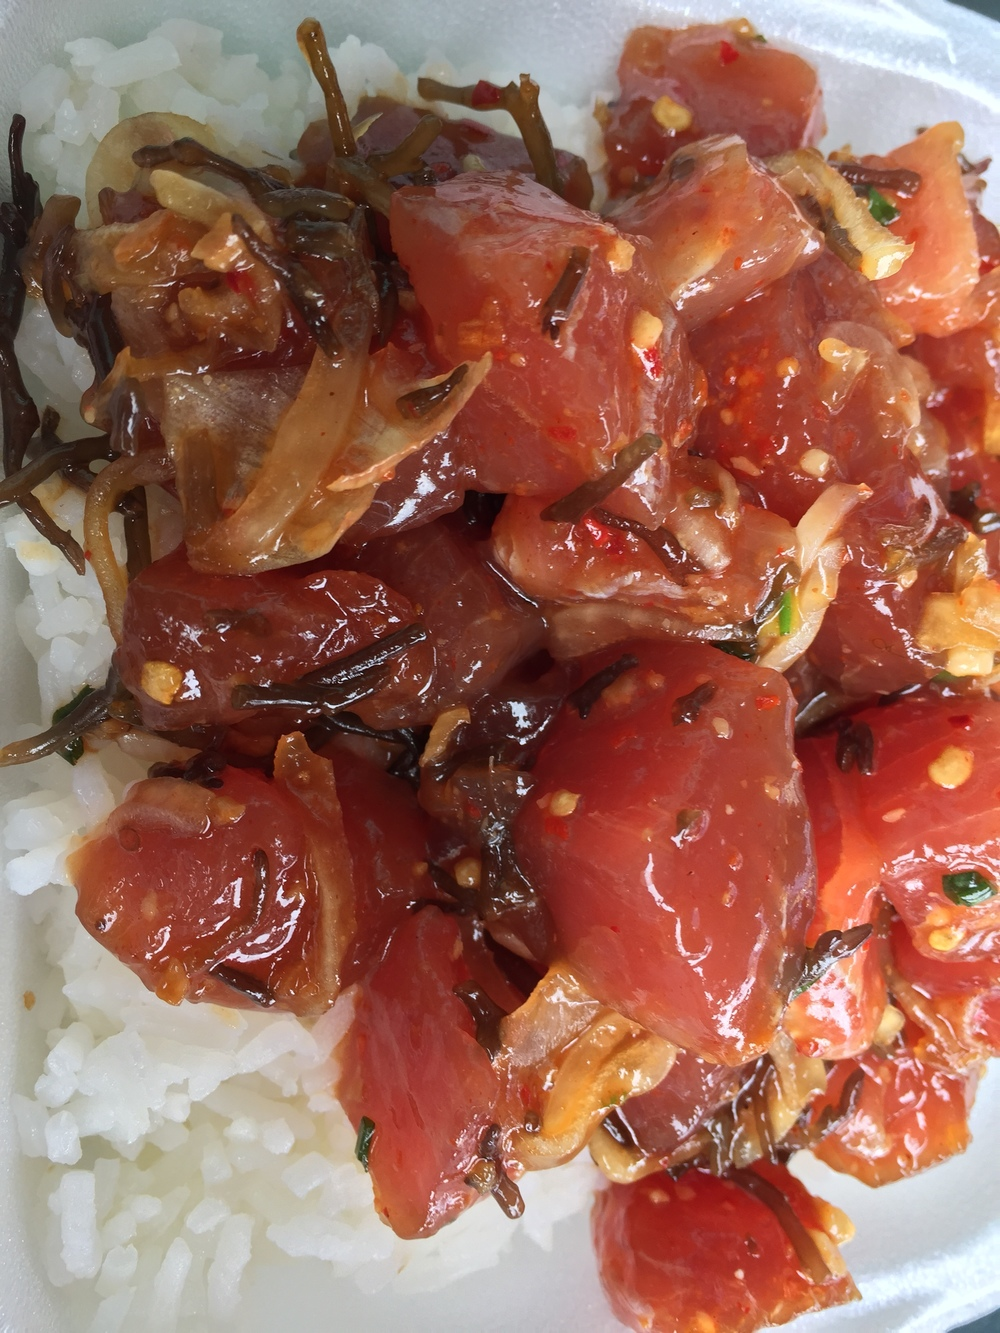 This salad is marinated in soy sauce with seaweed and sits on a bed of rice.  Another way to prepare poke.